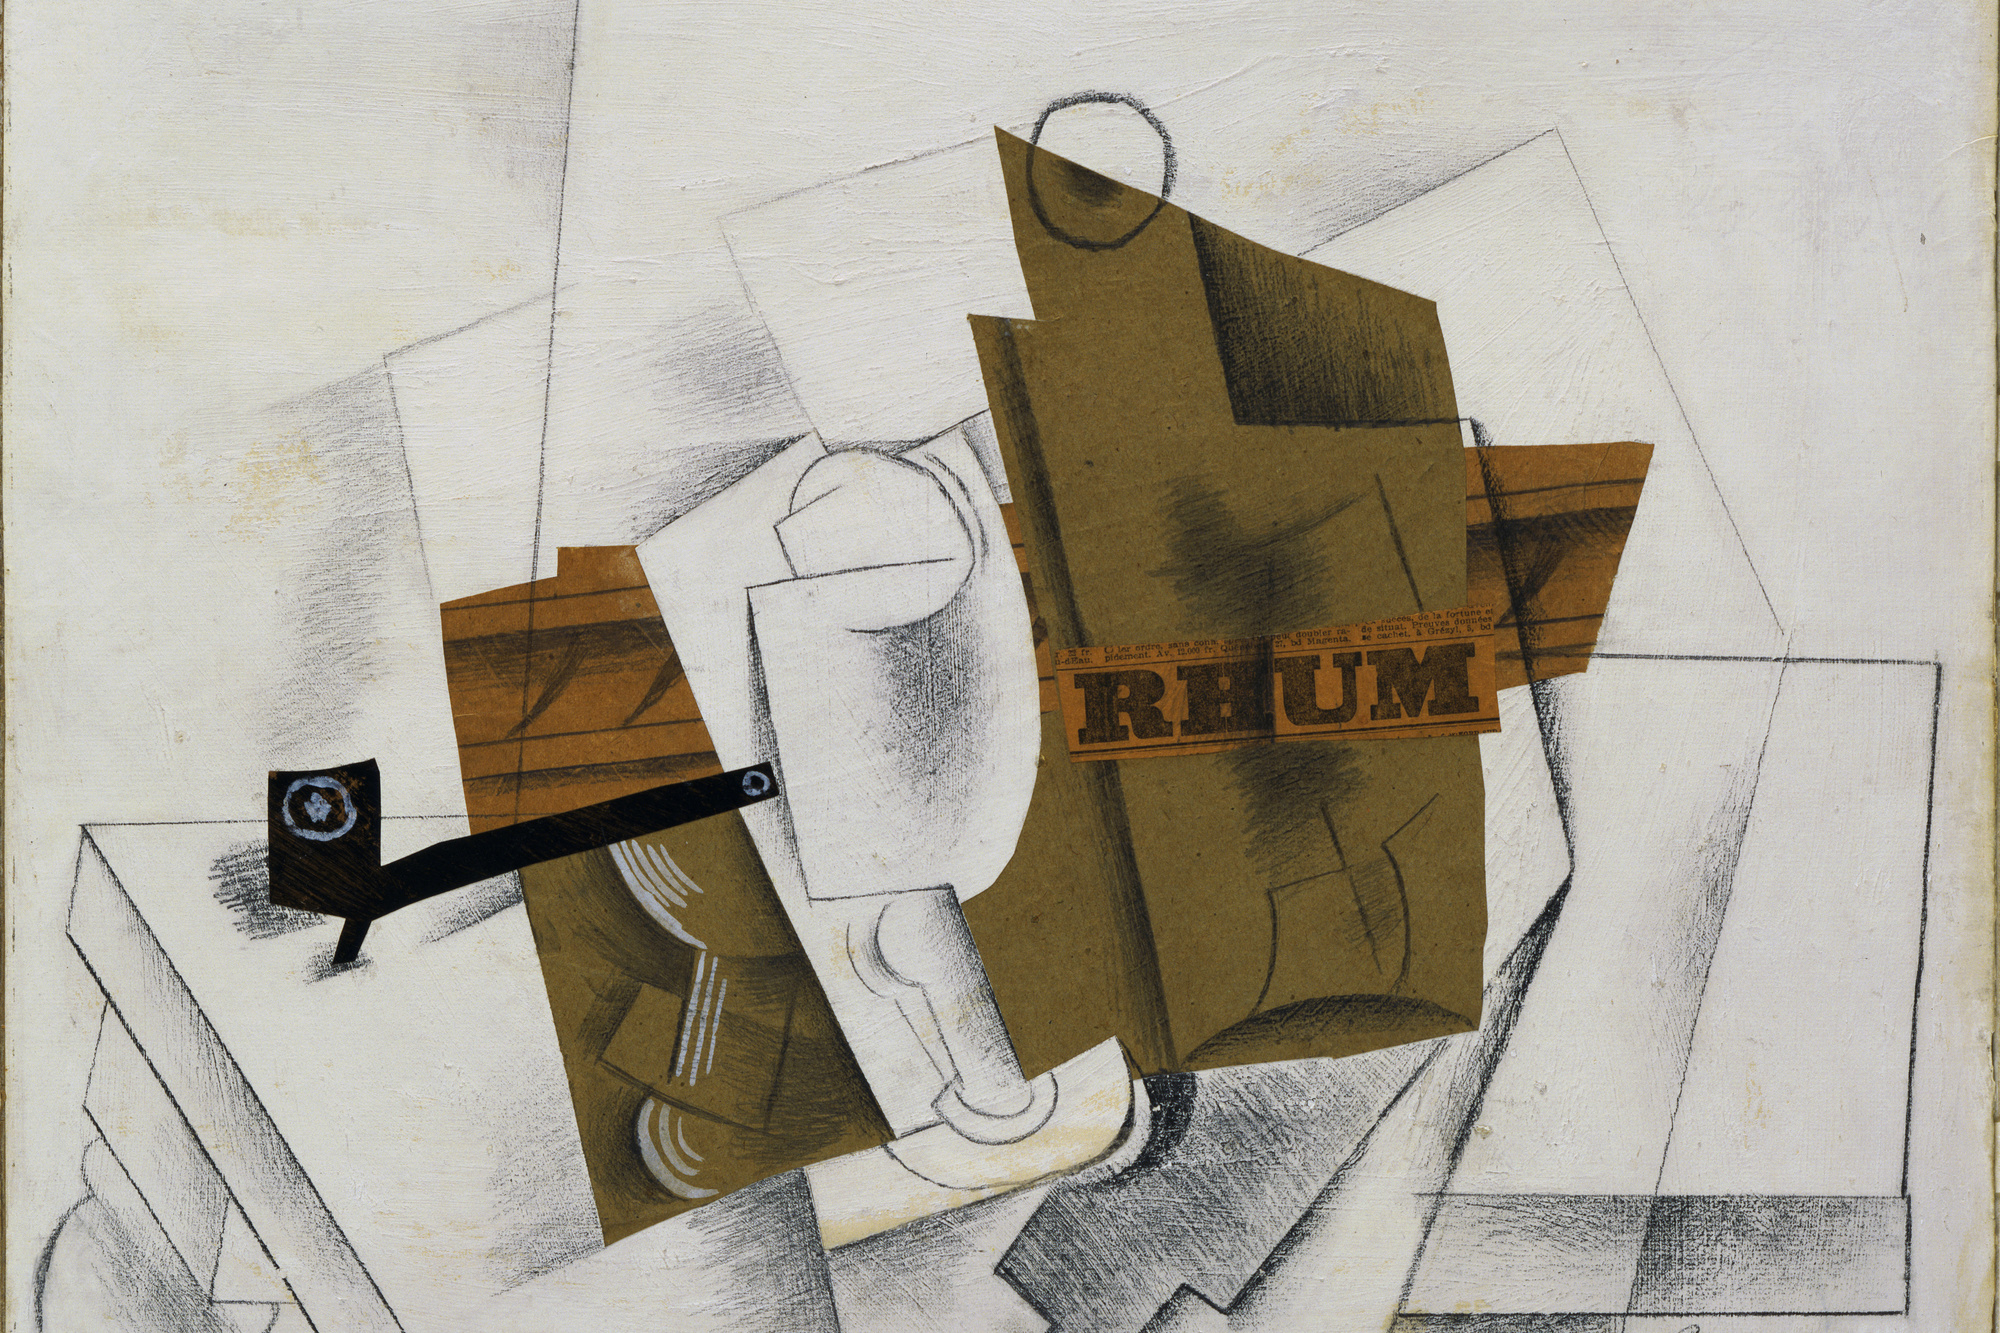 Pablo Picasso. Pipe, Glass, Bottle of Rum. March 1914. Cut-and-pasted colored paper, printed paper, and painted paper, pencil, and gouache on prepared board, 15 3/4 × 20 3/4″ (40 × 52.7 cm). Gift of Mr. and Mrs. Daniel Saidenberg. © 2008 Estate of Pablo Picasso / Artists Rights Society (ARS), New York